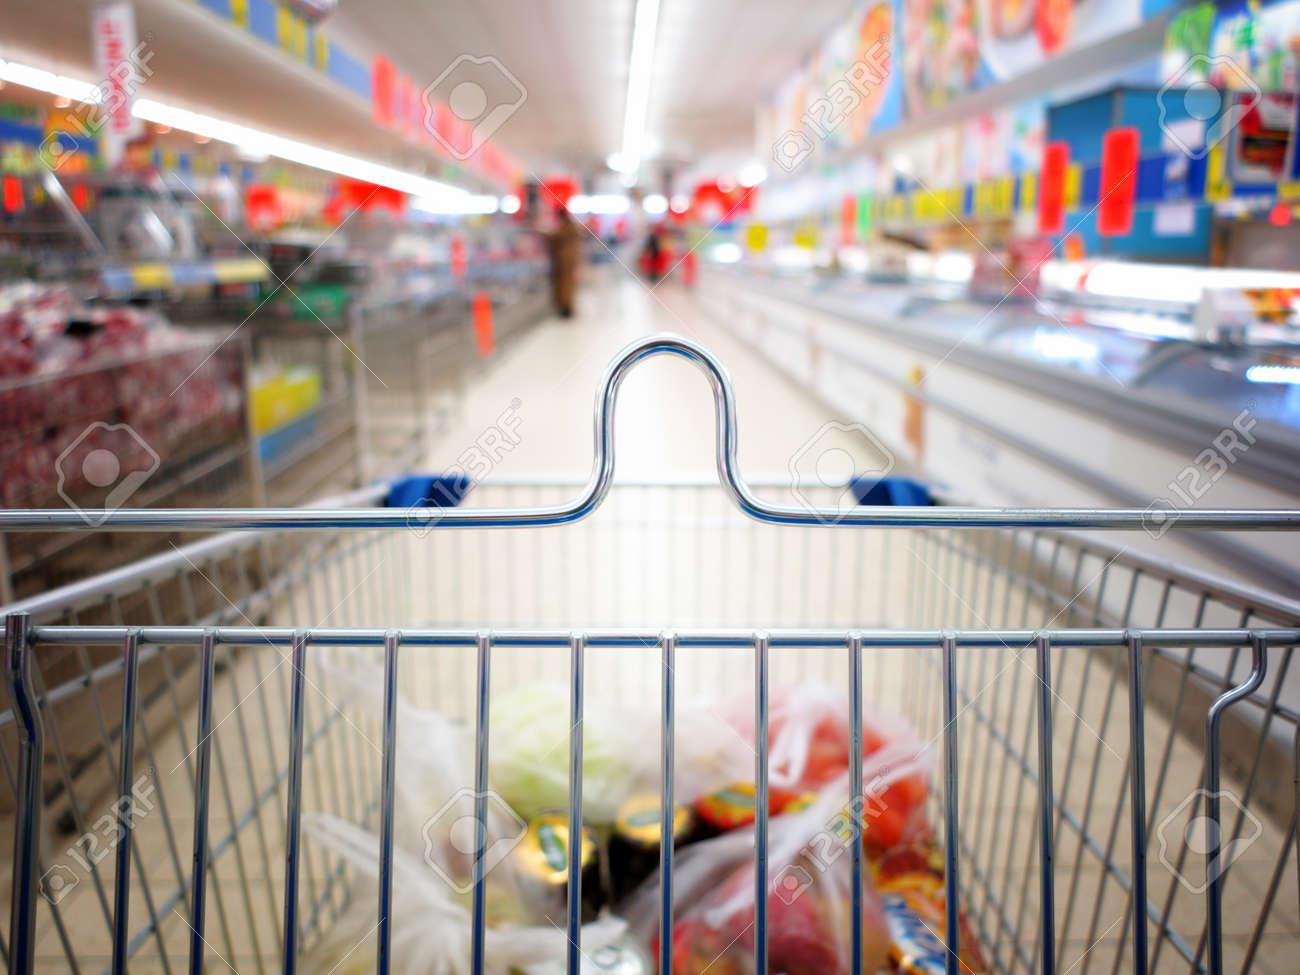 view of a shopping cart with grocery items at supermarket  blurred background Stock Photo - 17742543